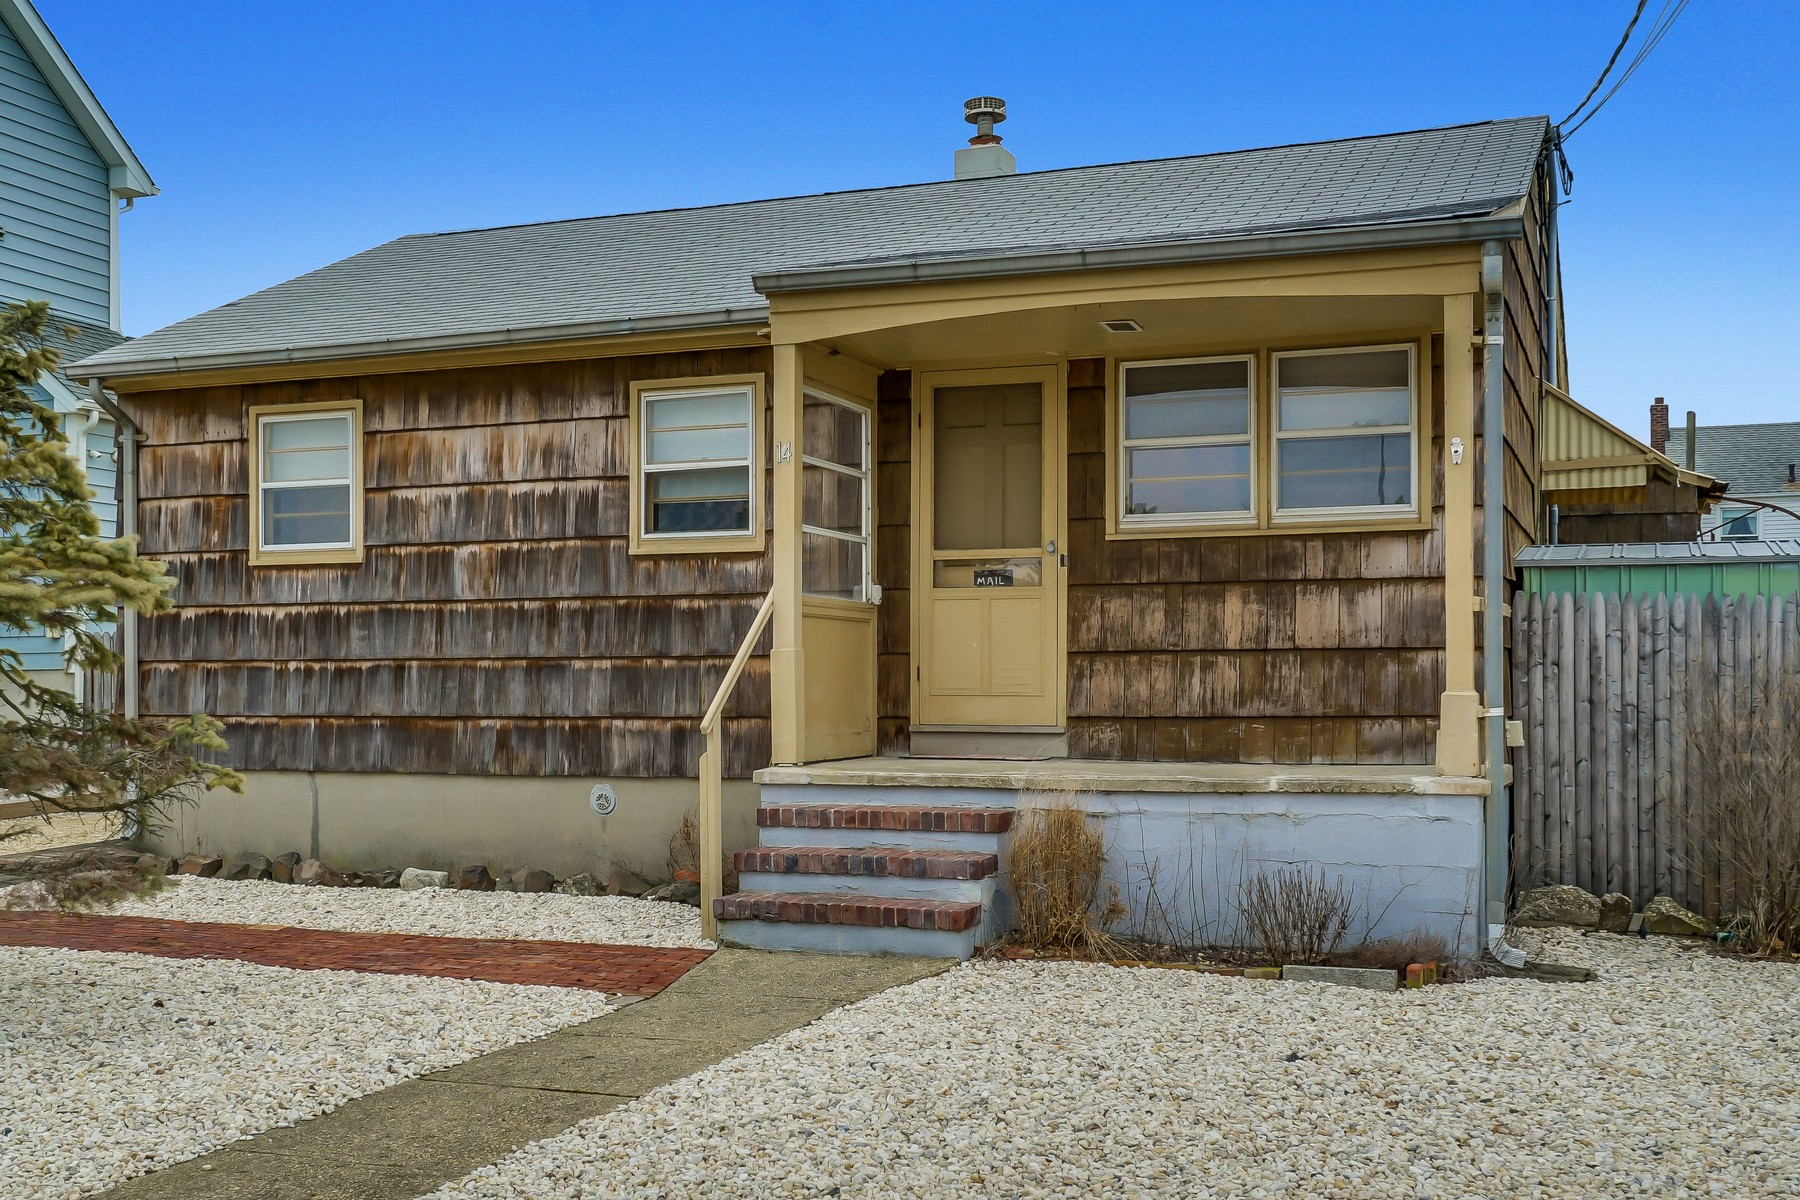 Single Family Home for Sale at Just In Time For Summer 14 Second Ave Manasquan, New Jersey 08736 United States